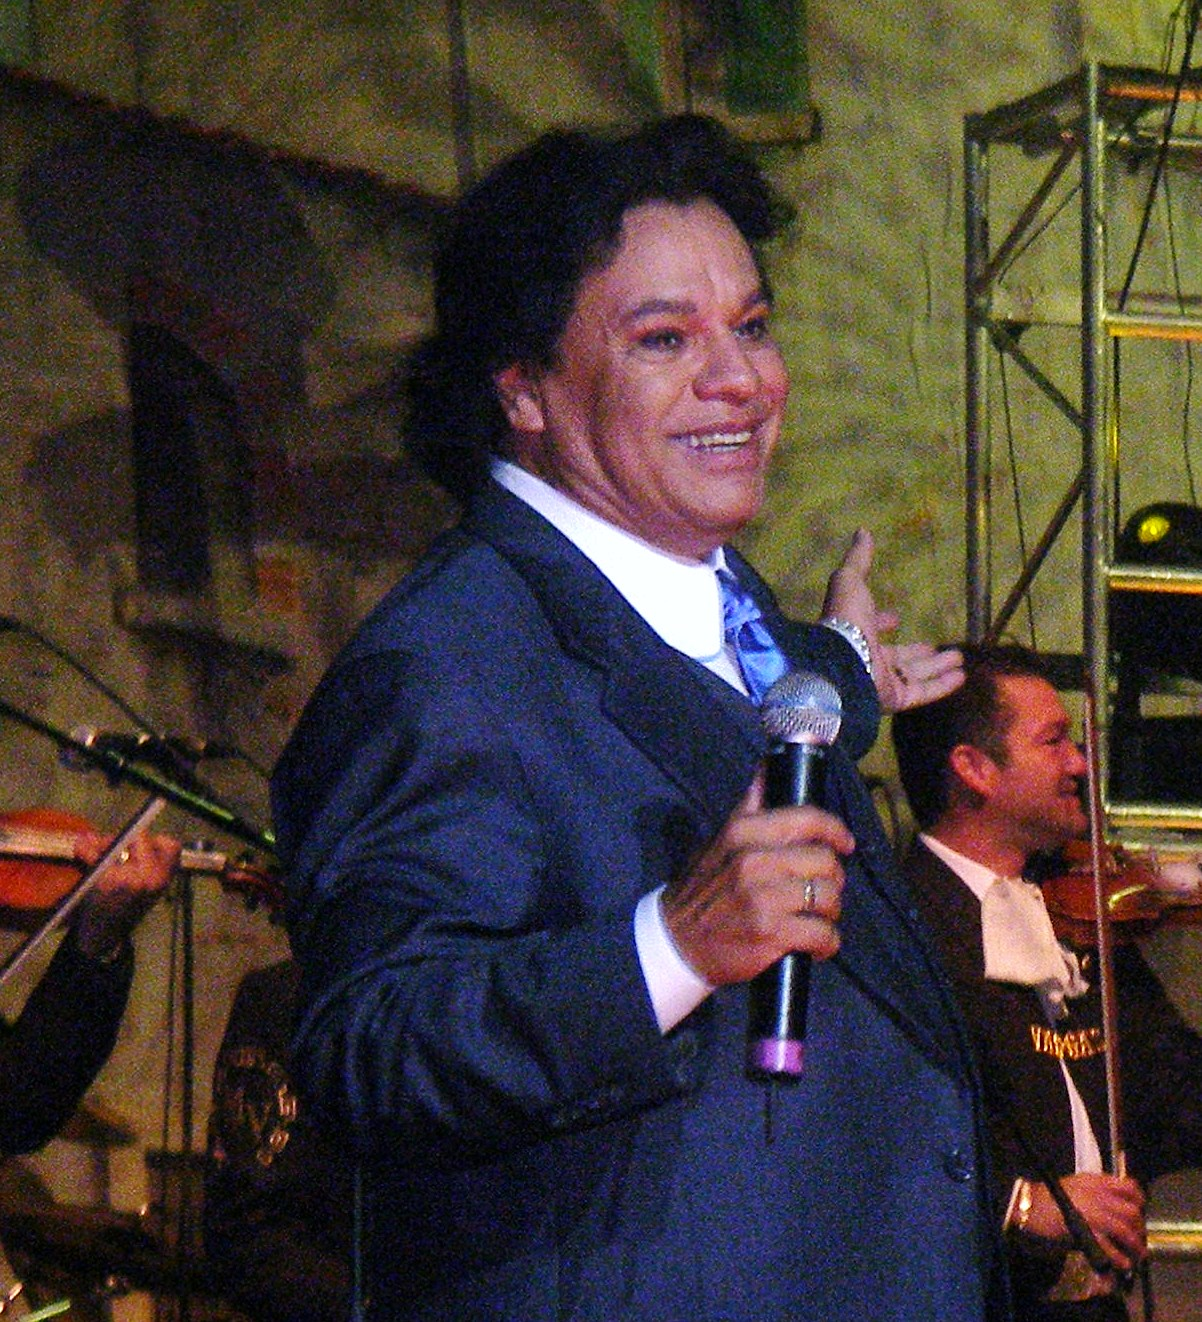 Juan Gabriel in 2006 A reflection of some of the best songs of the late Juan Gabriel